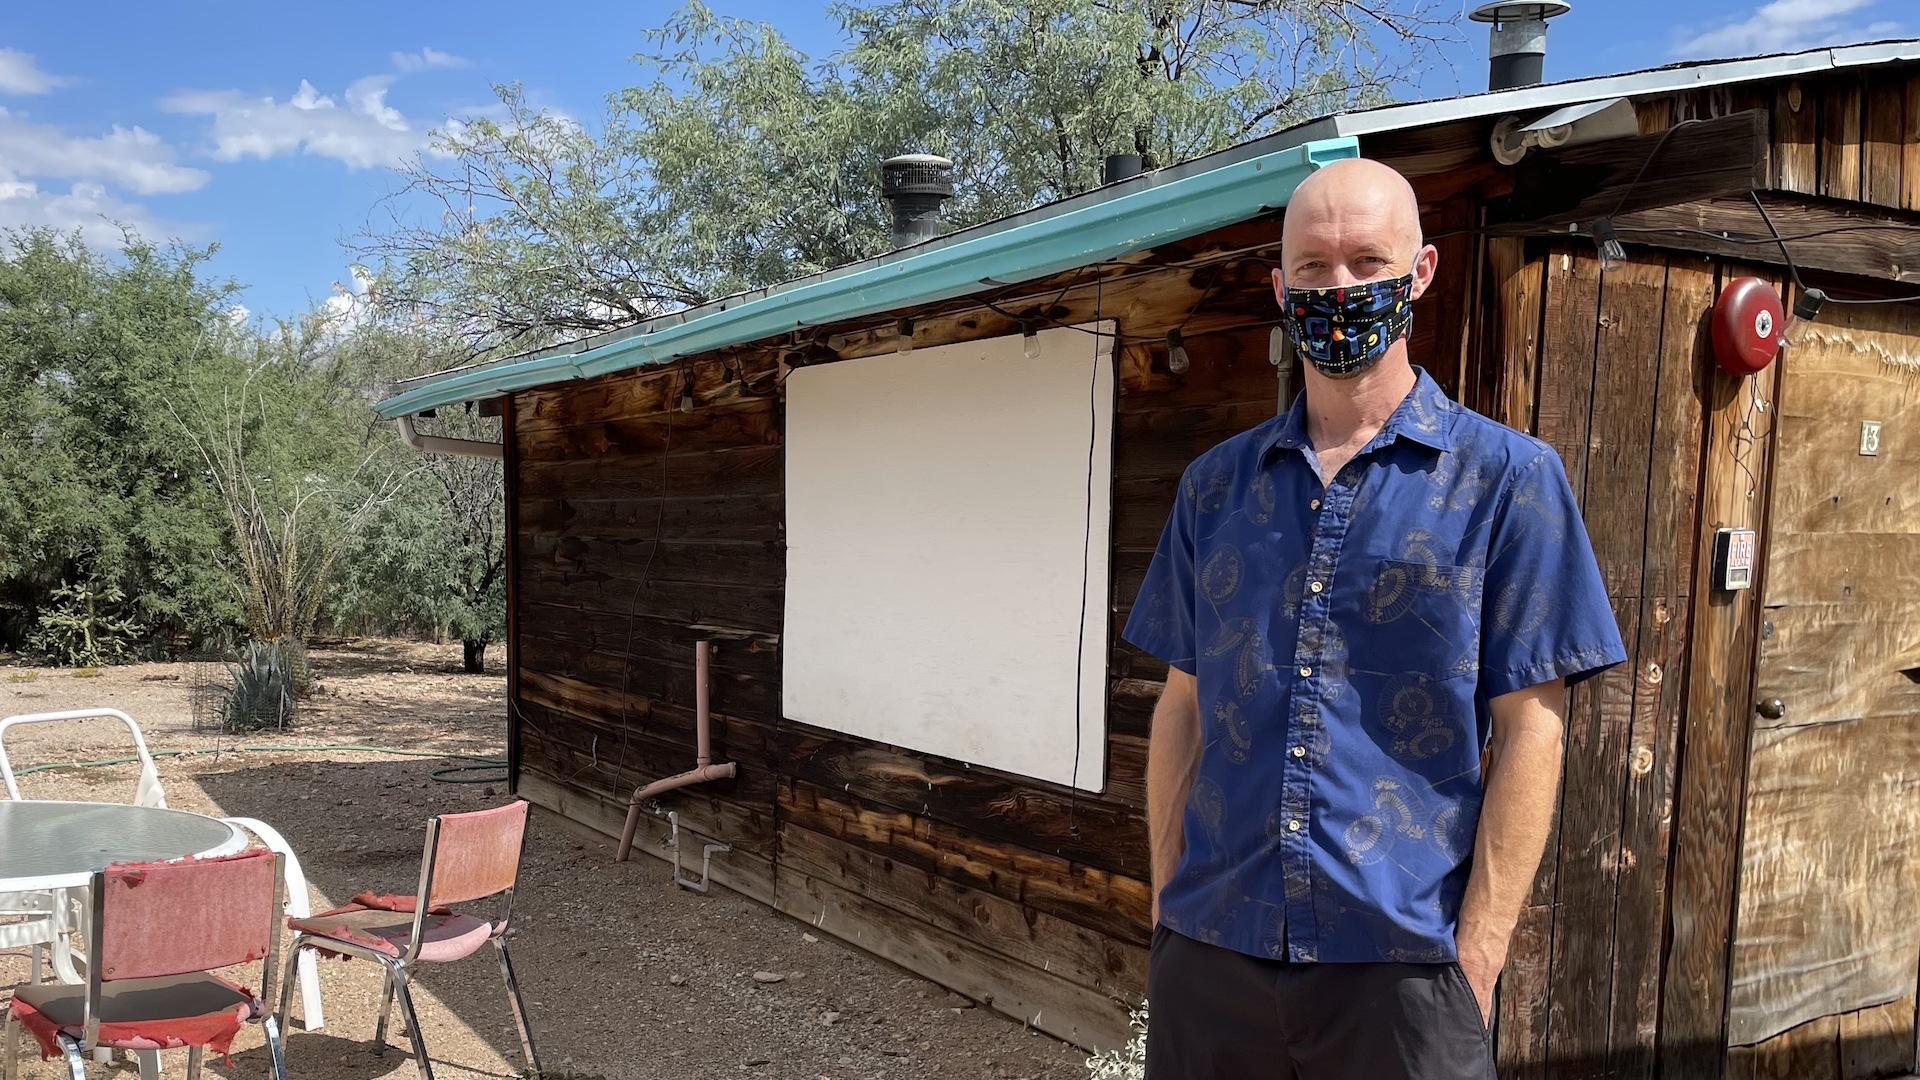 Dan Millis is a homeowner in the Blenman-Elm neighborhood of Tucson. He stands in front of a guest house in his backyard on October 5th, 2021 that he hopes to replace with a casita.